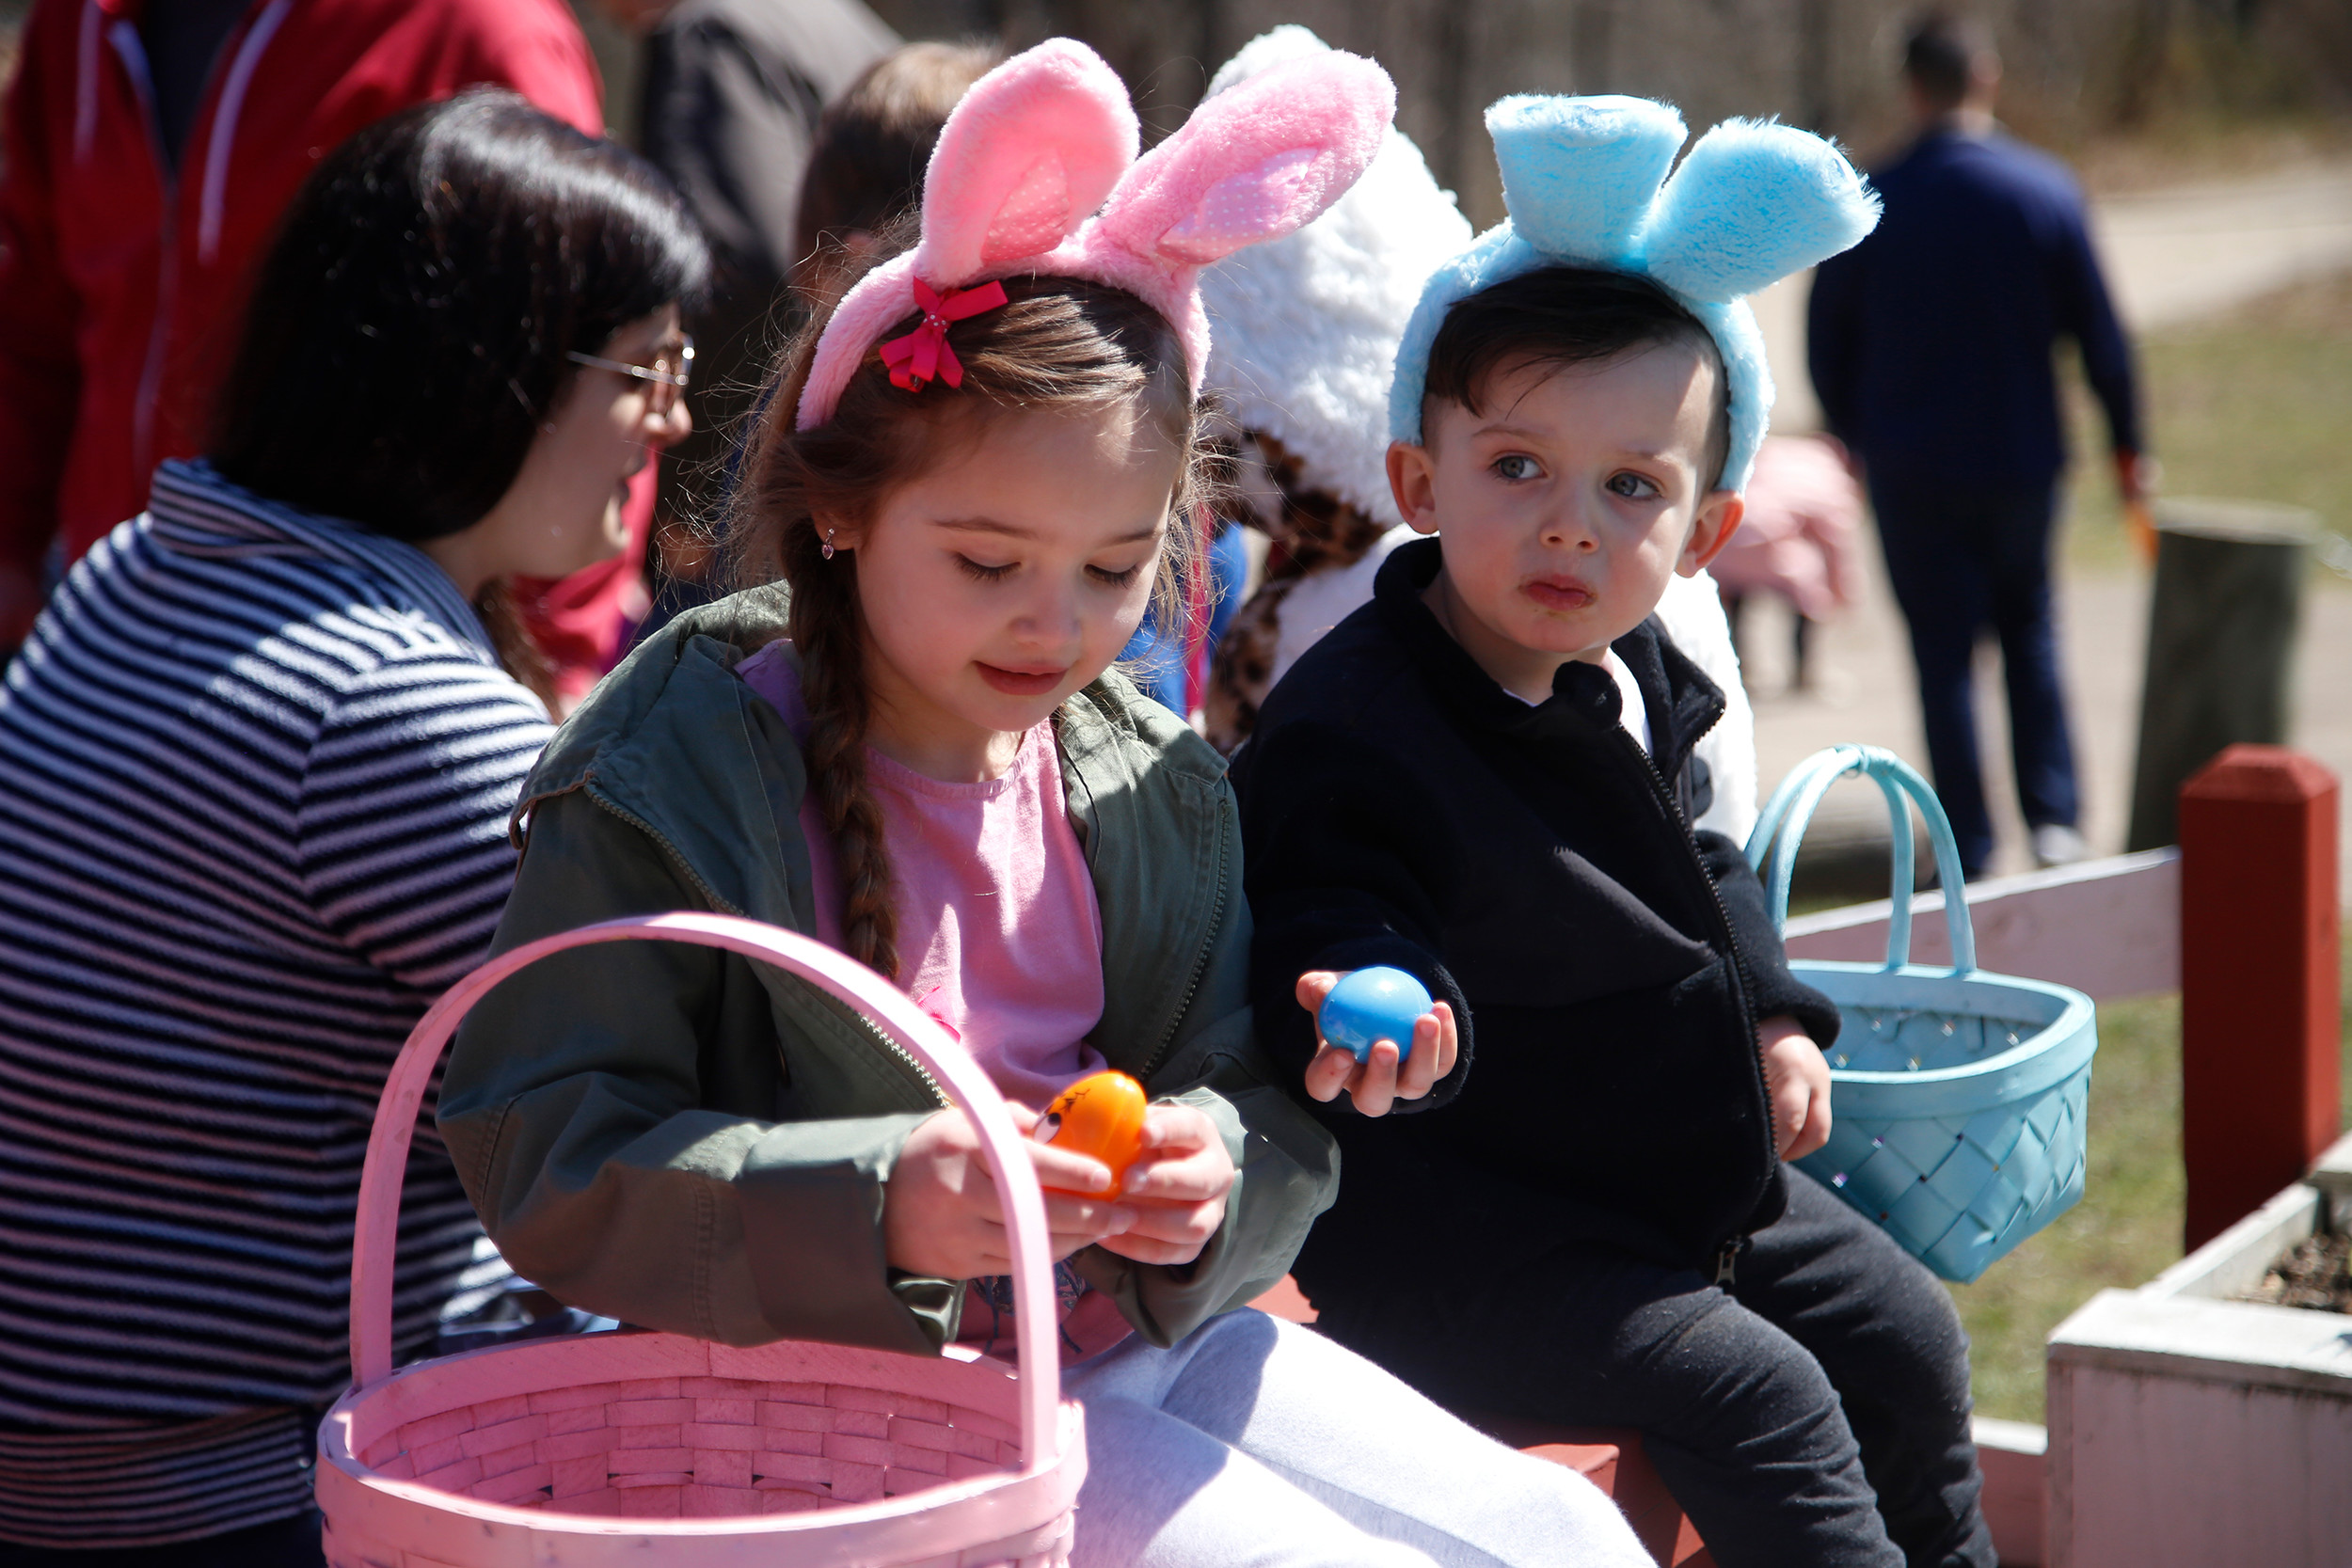 Carolina O'Connor, 5, and Xavier O'Connor, 2, collected candy-filled eggs at the annual Forest City Community Civic Association Spring Fling on April 2.